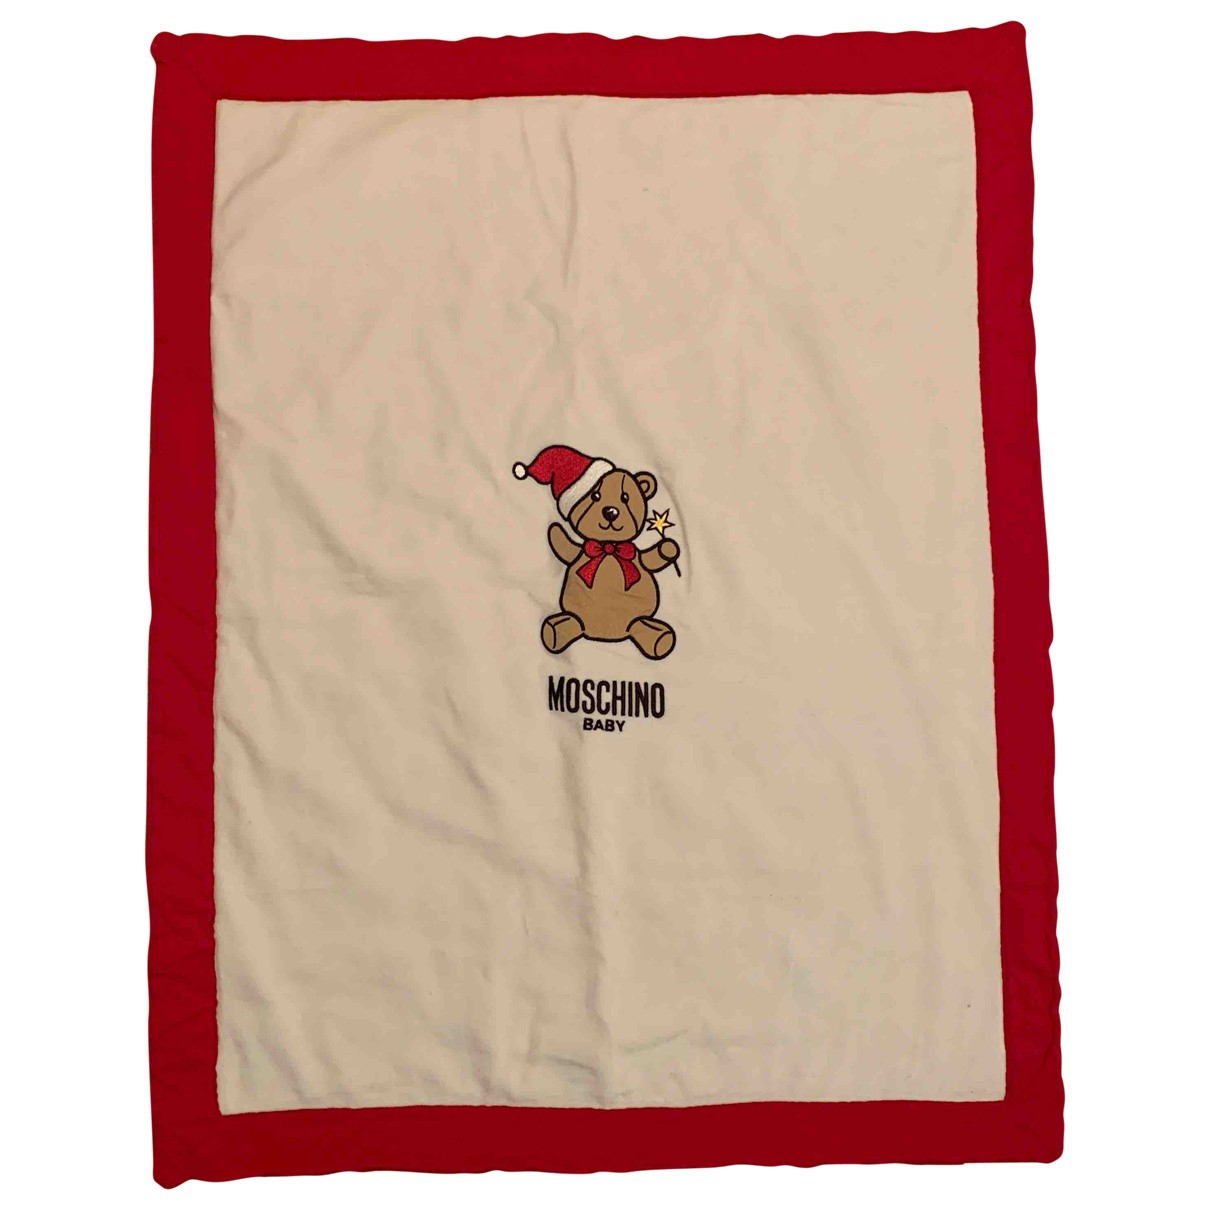 Moschino N White Cotton Textiles for Life & Living N